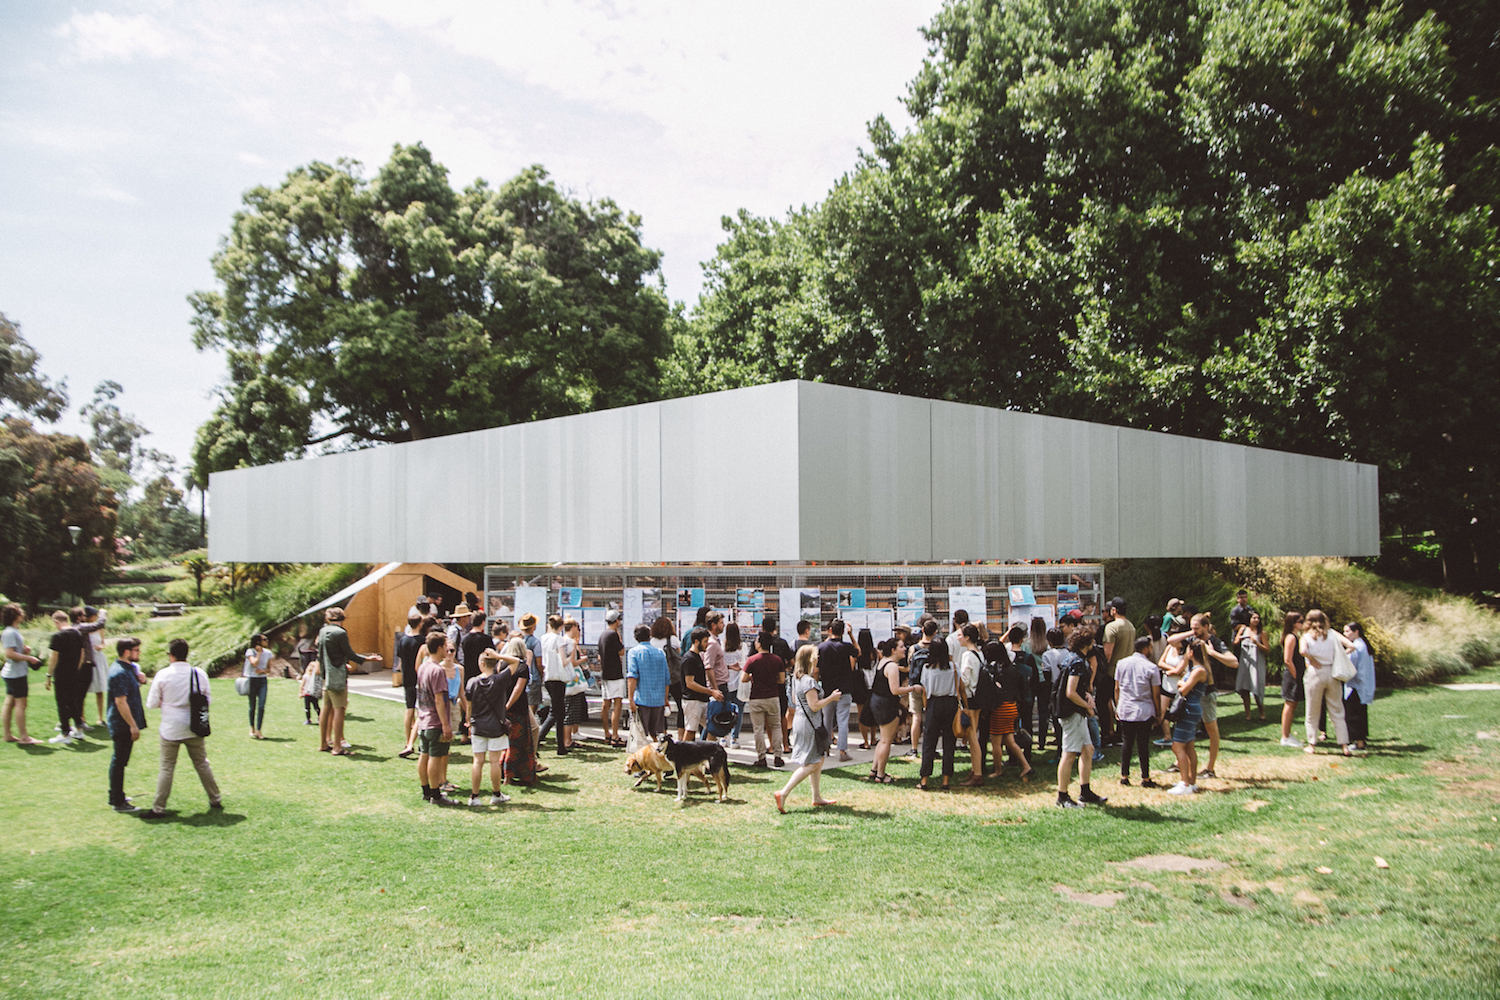 The 2017 MPavilion is a single storey, sheltered amphitheatre, with a focus on participatory design. The 19x19-metre aluminium clad structure allows for multiple configurations that can generate unexpected programming, echoing the ideals of the typology of the traditional amphitheatre.